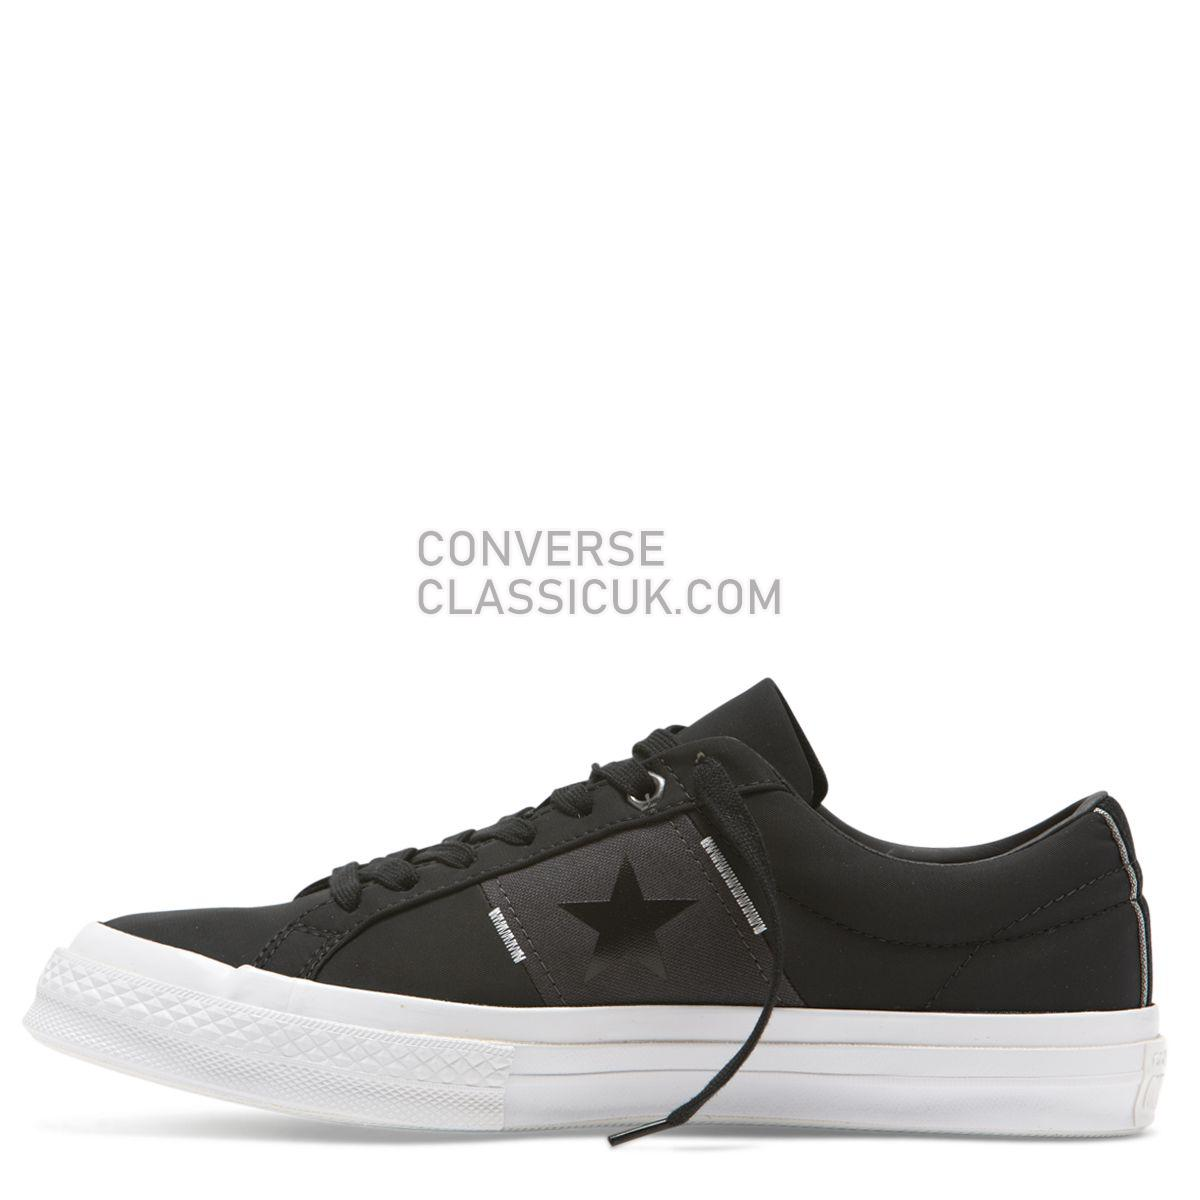 Converse One Star Flight School Low Top Black Mens Womens Unisex 165059 Black/Almost Black/White Shoes